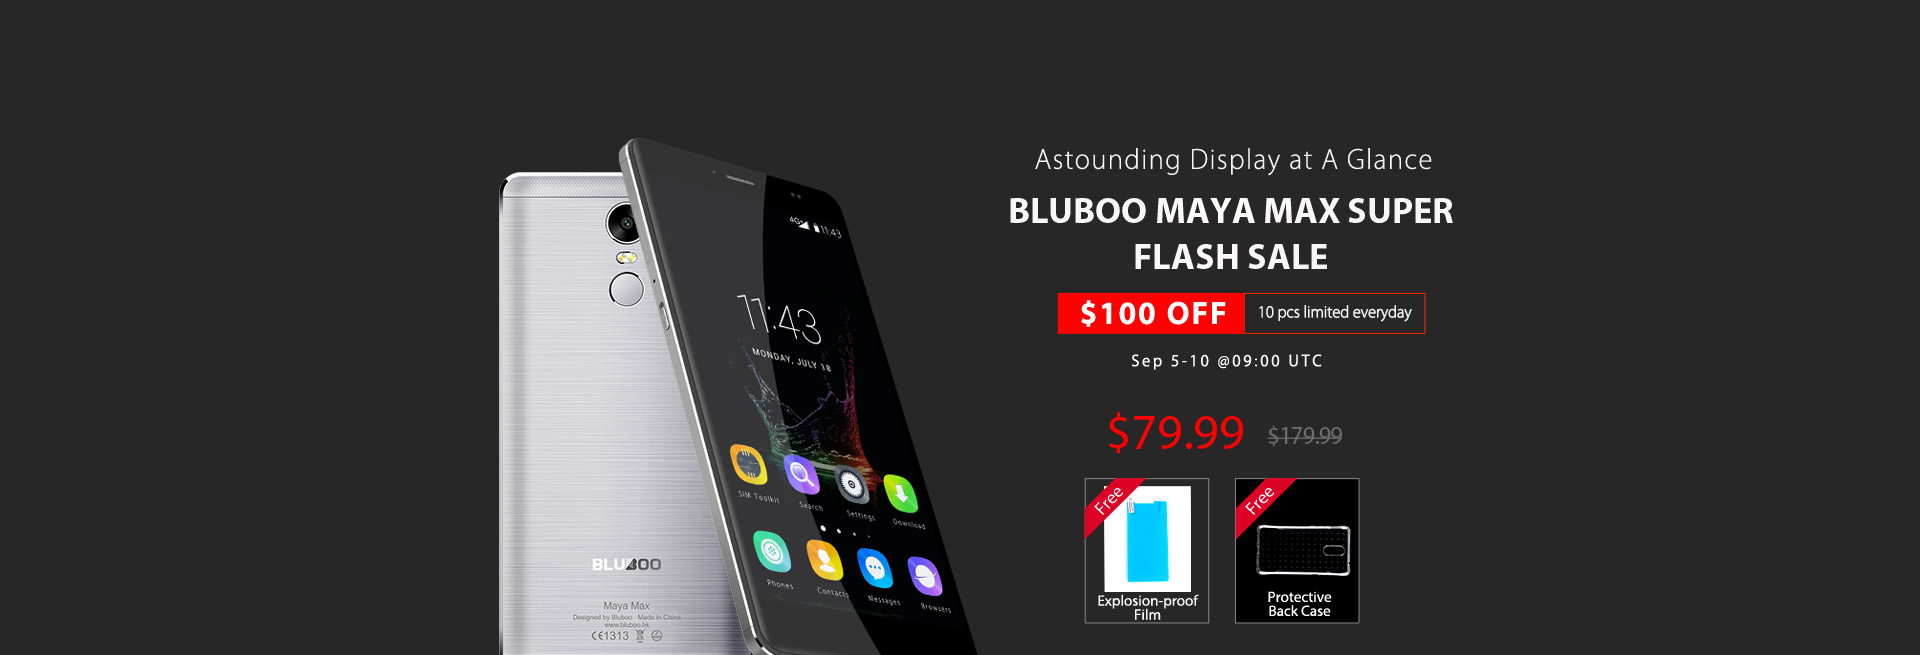 http://uidesign.gearbest.com/GB/images/promotion/2016/maxqiang/a.jpg?1